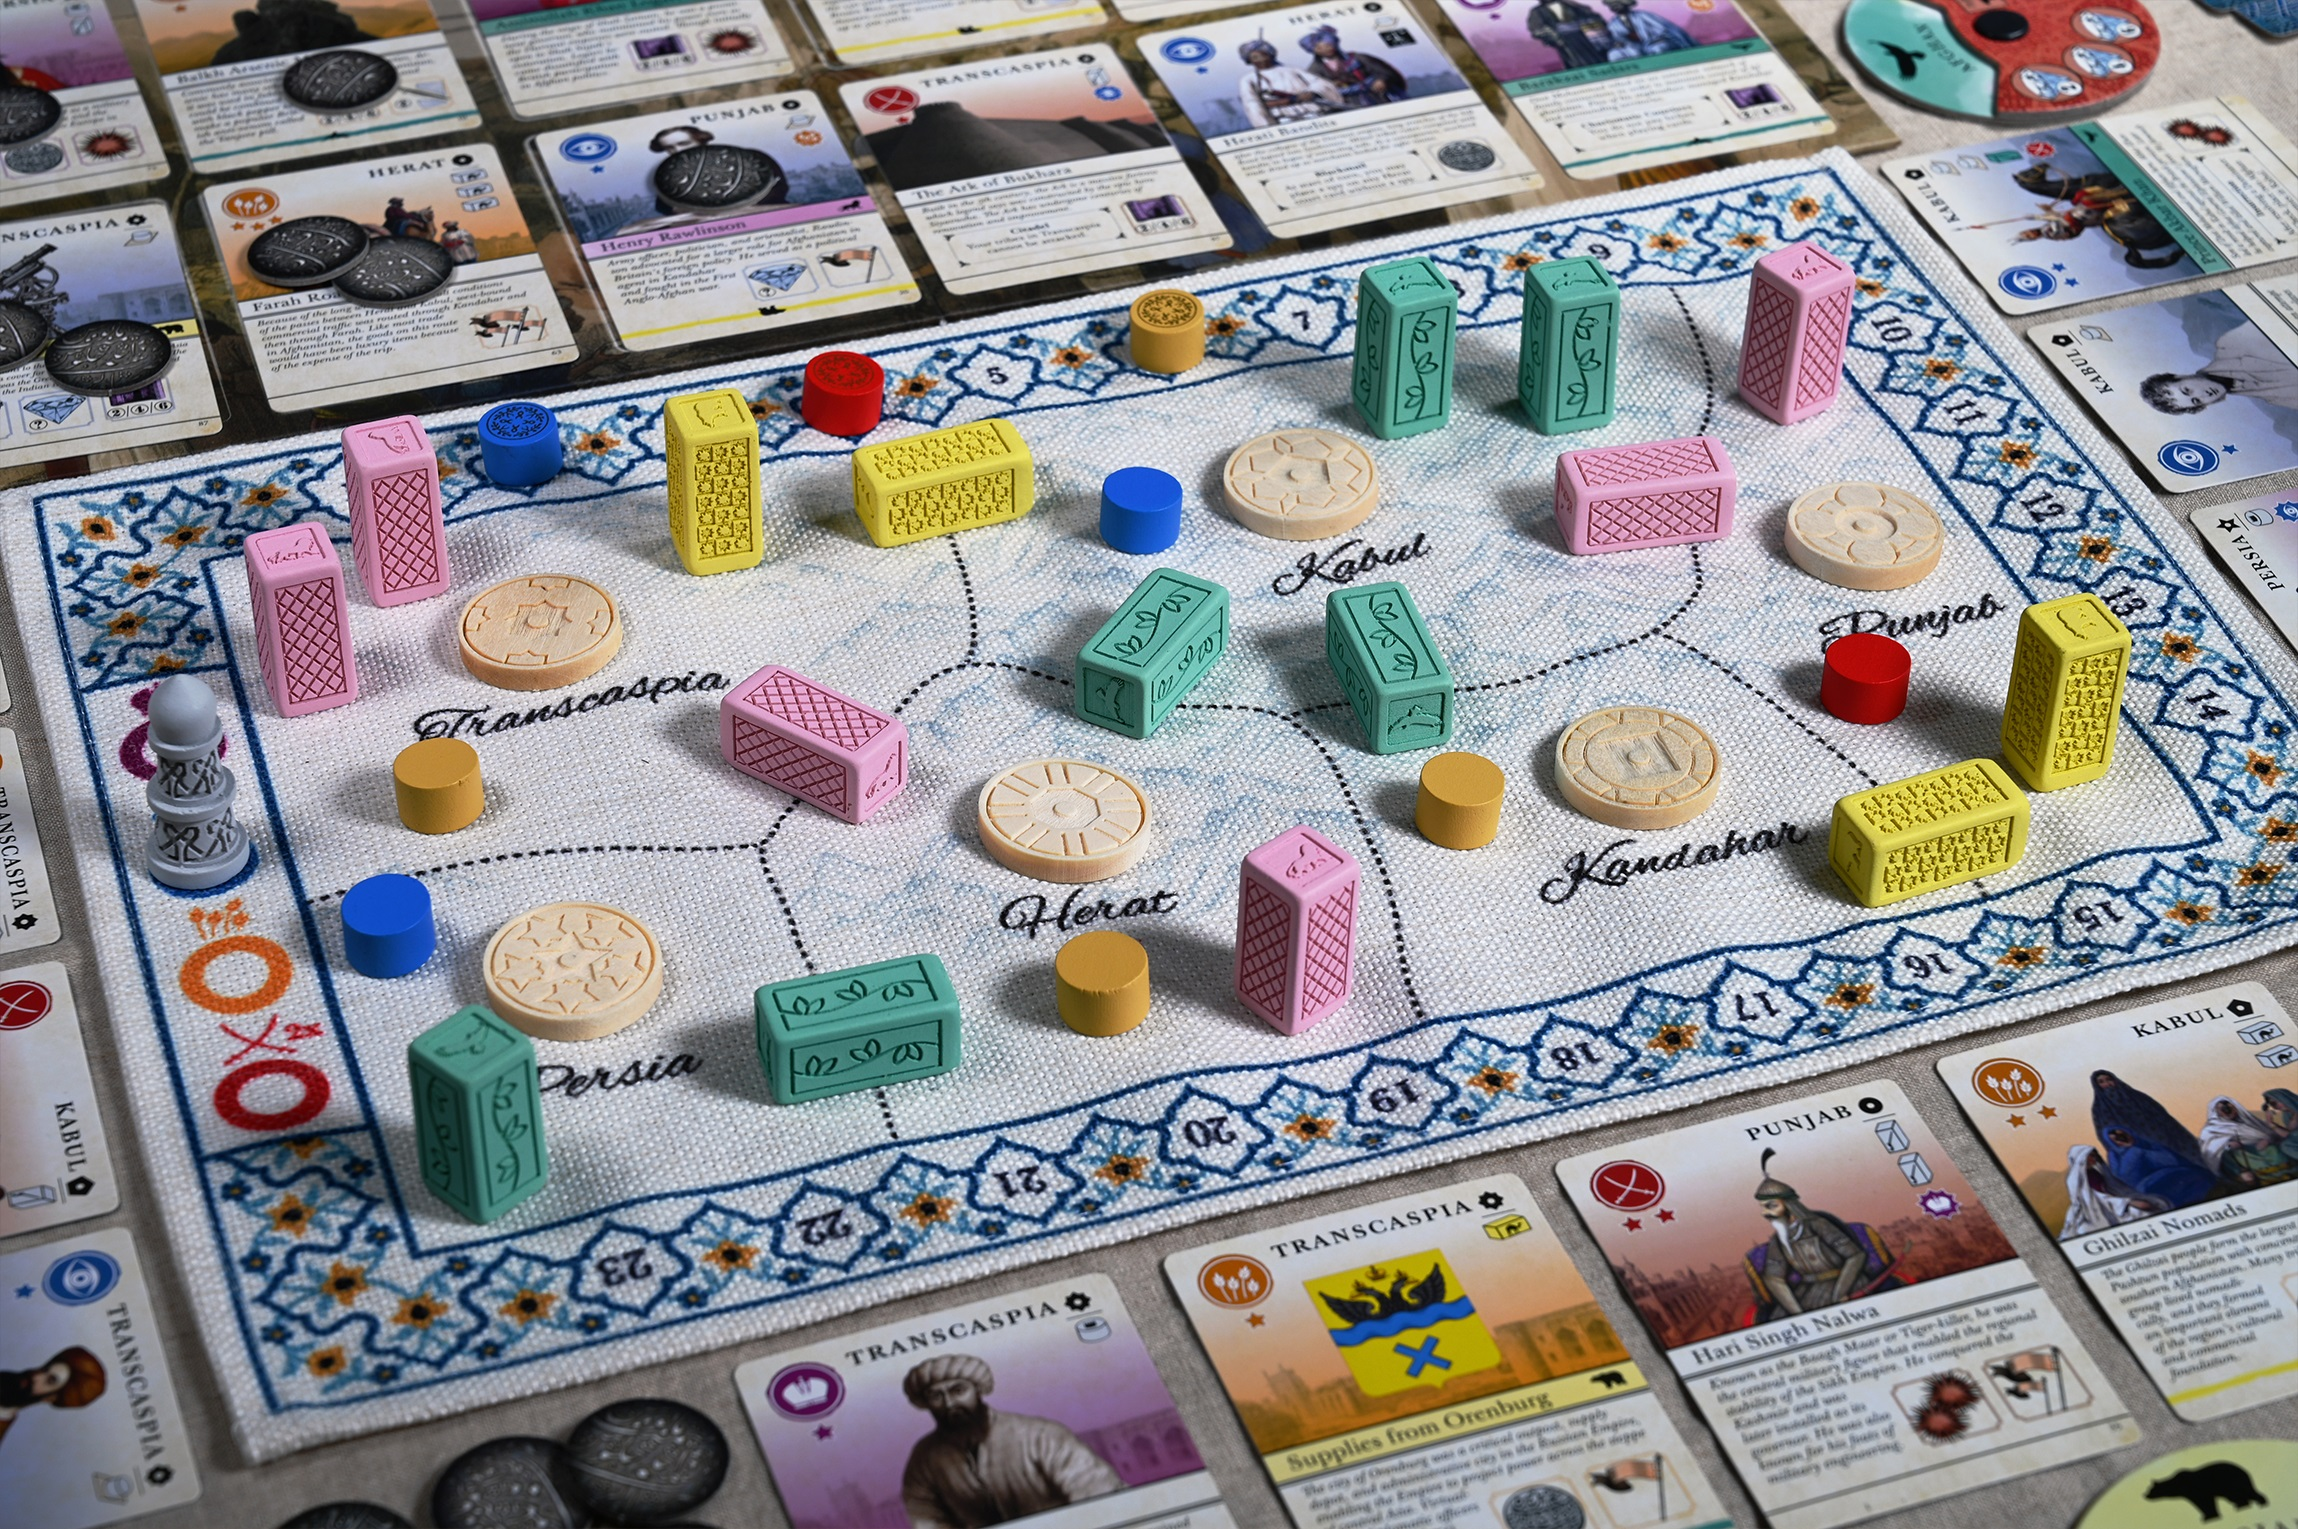 This board game has you play as Afghan leaders subverting imperialist ambitions